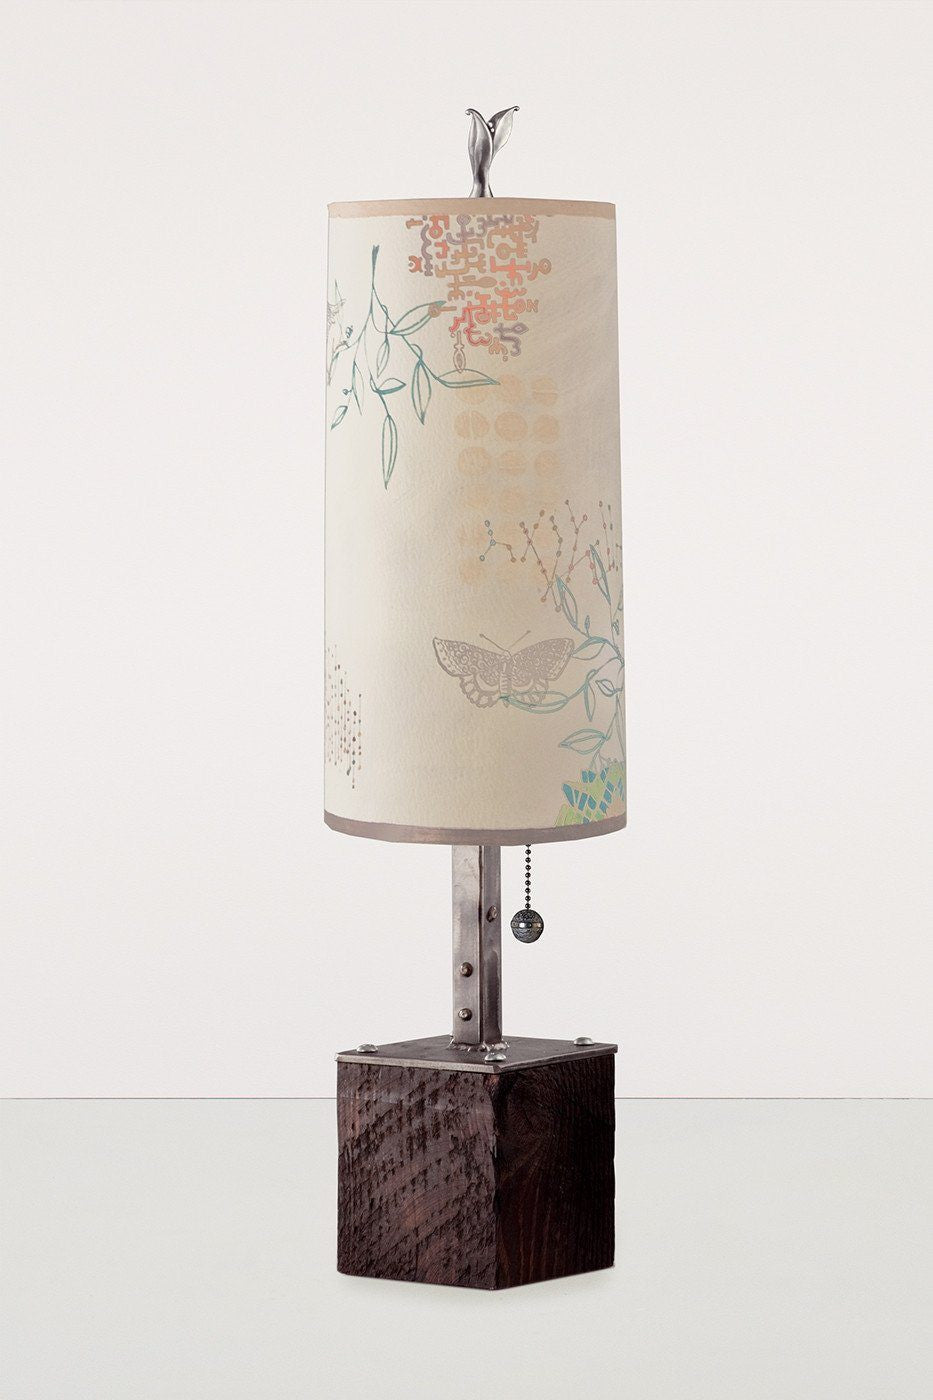 Steel Table Lamp on Reclaimed Wood with Small Tube Shade in Ecru Journey